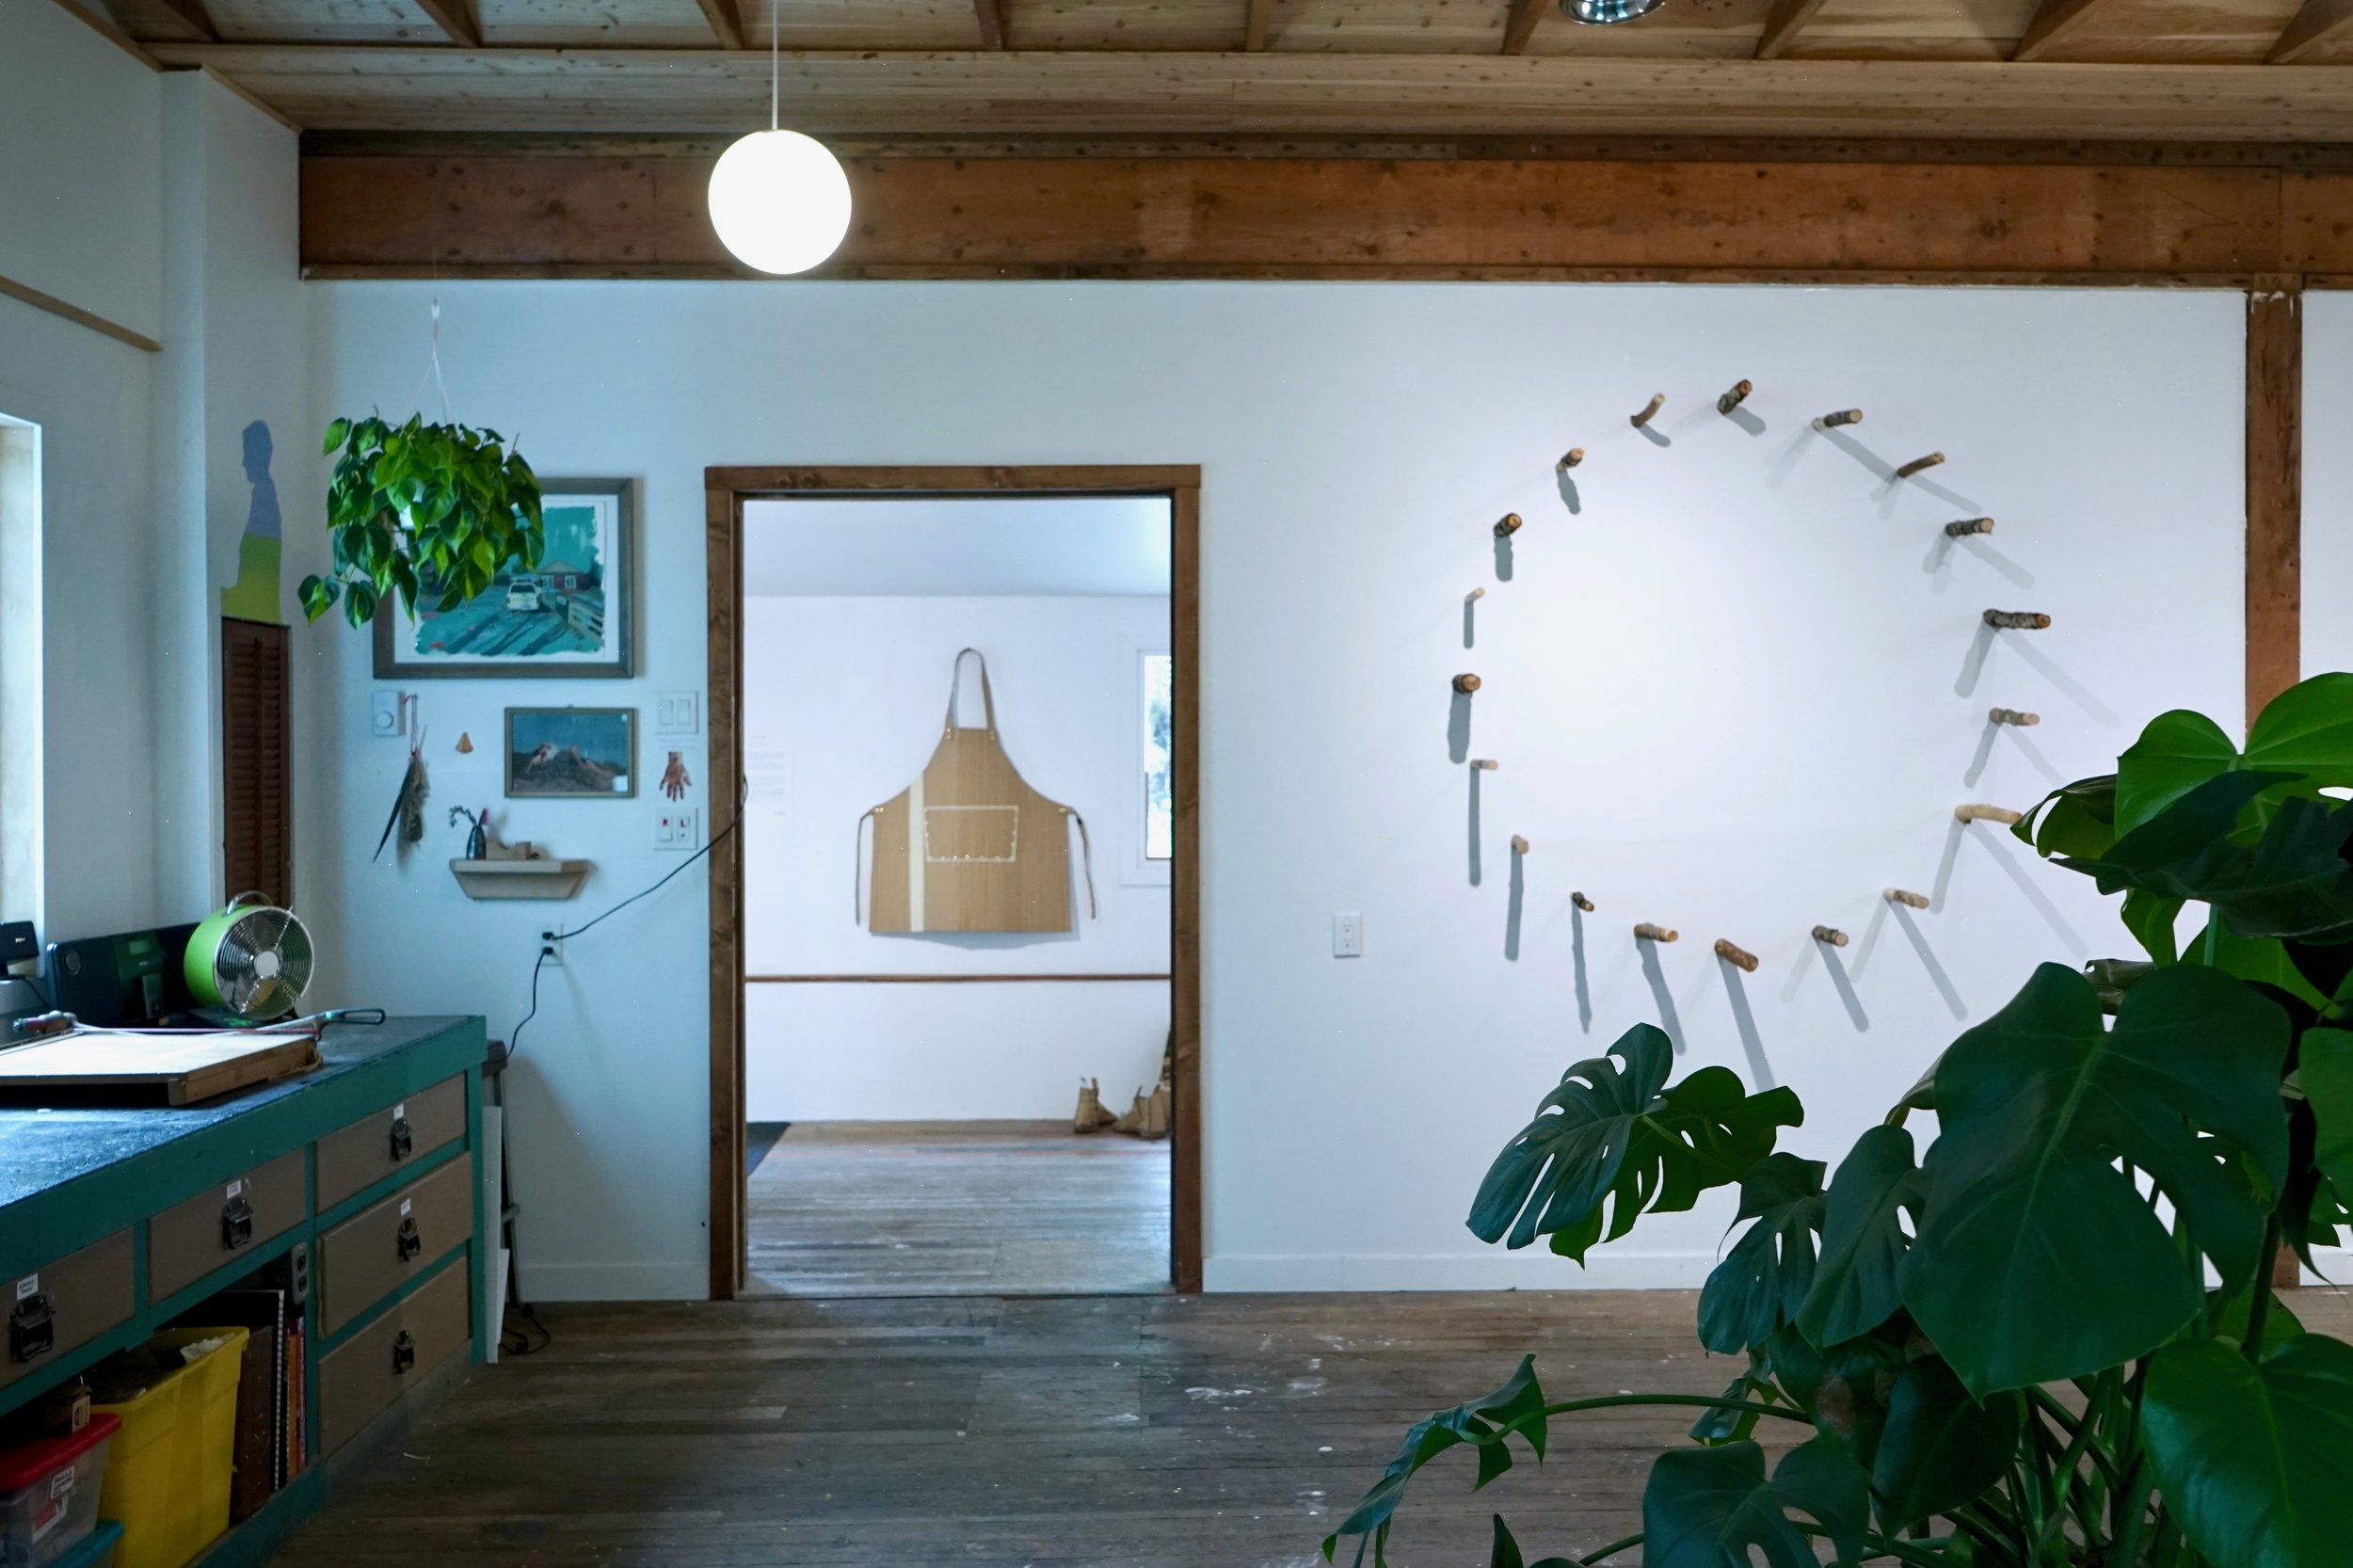 Studio View into the Gallery with work by Isobel Rayson